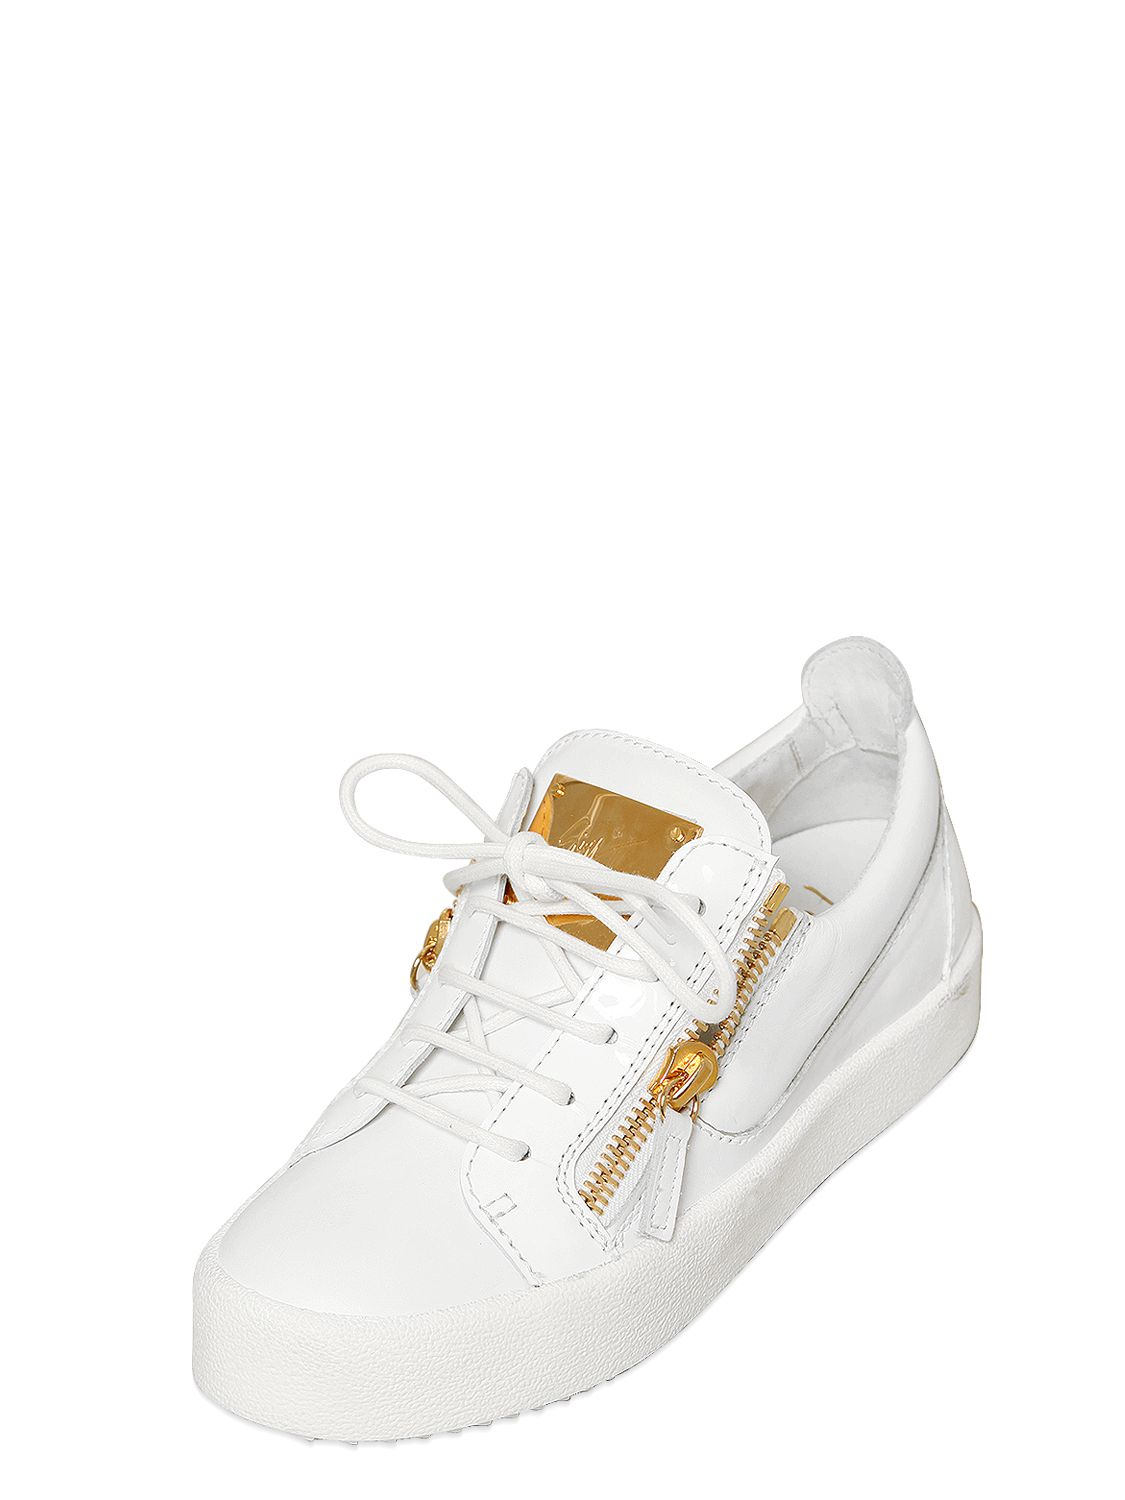 giuseppe zanotti 20mm leather sneakers in white lyst